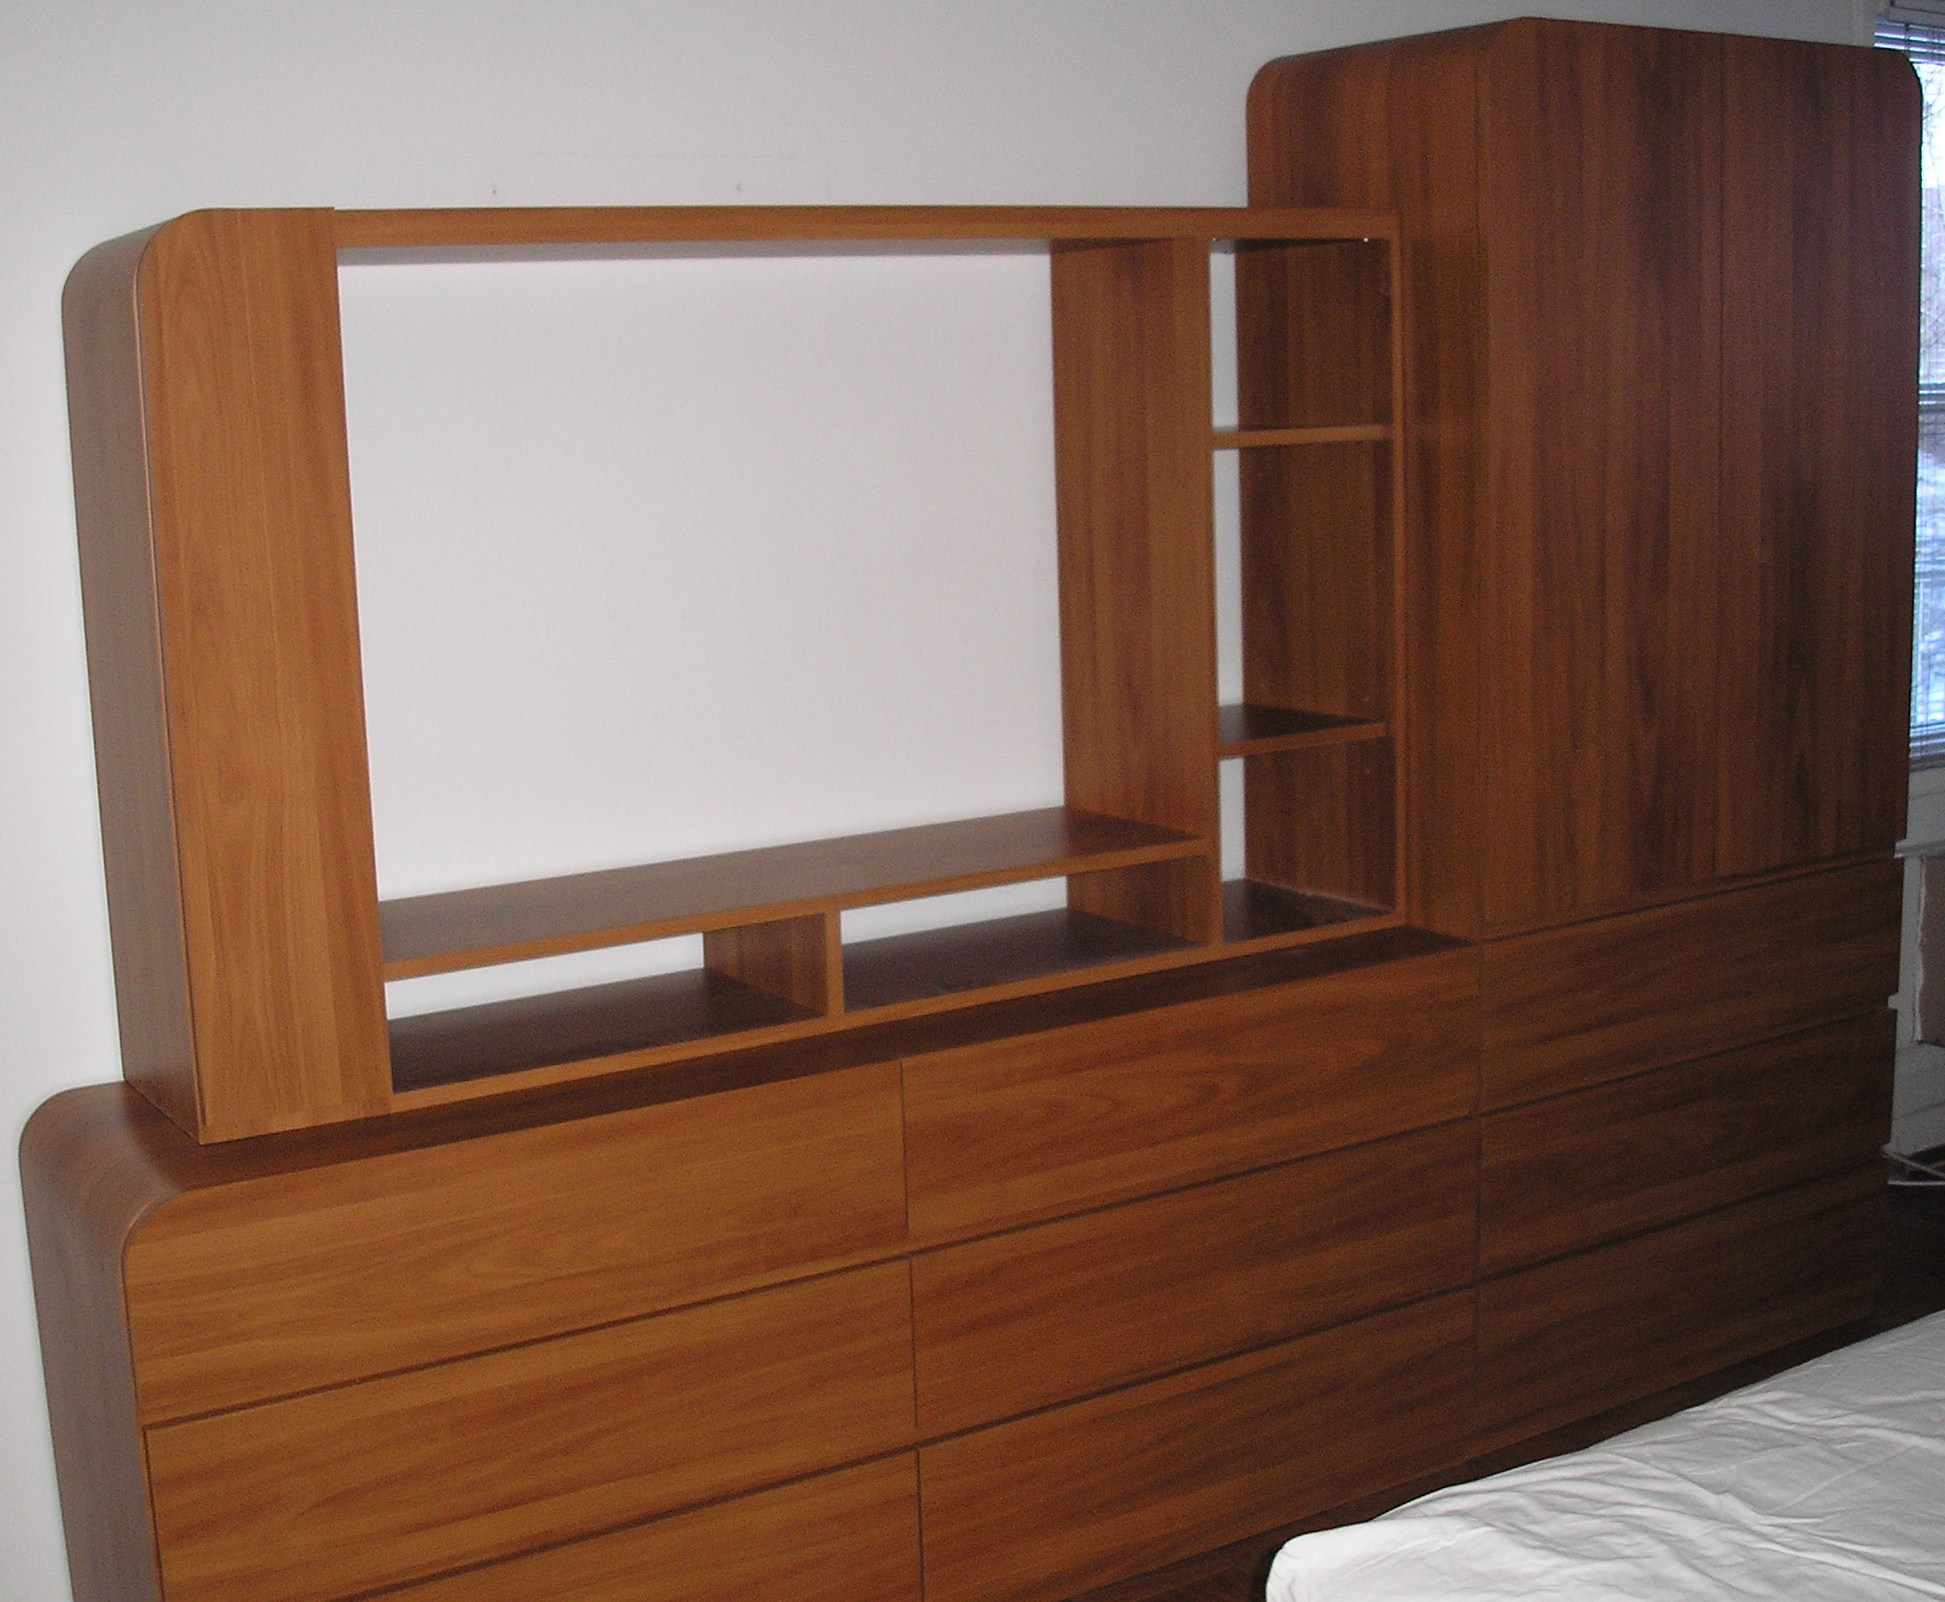 formica bedroom furniture formica bedroom formica formica bedroom sets queen pier wall unit bedroom set